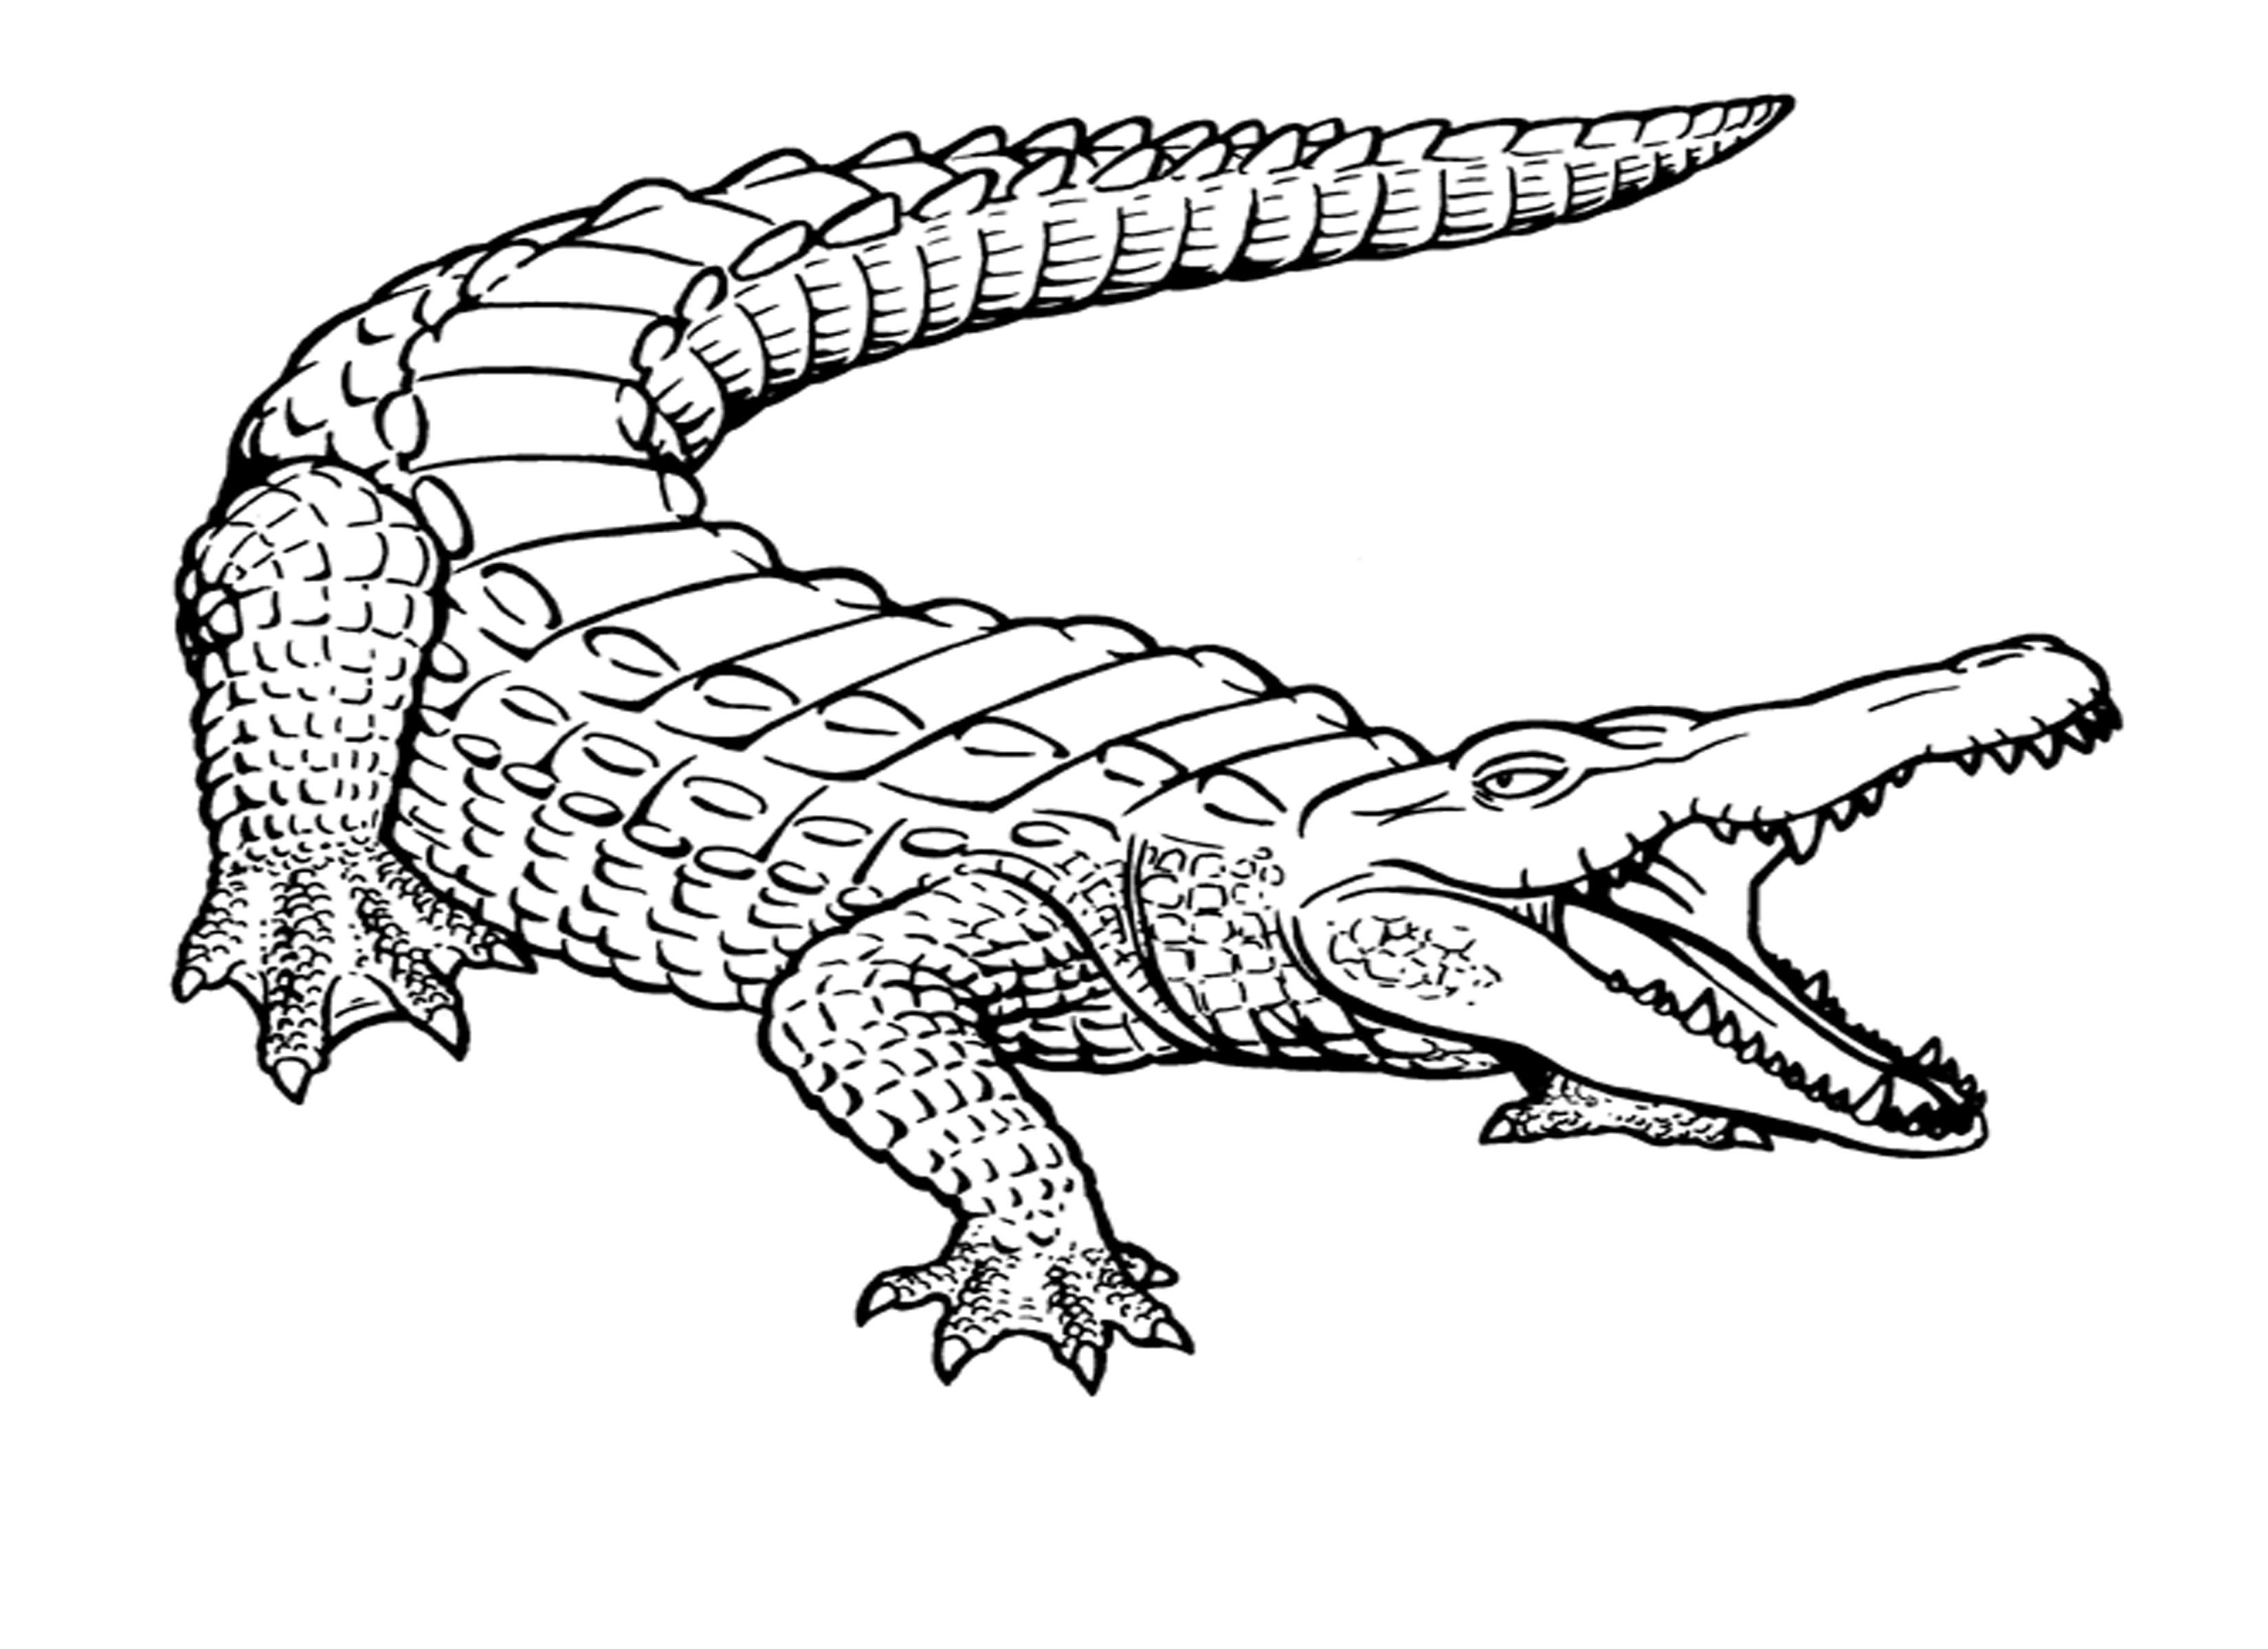 3300x2400 Crocodile Drawing For Kids Pictures Of Crocodiles For Kids Kids